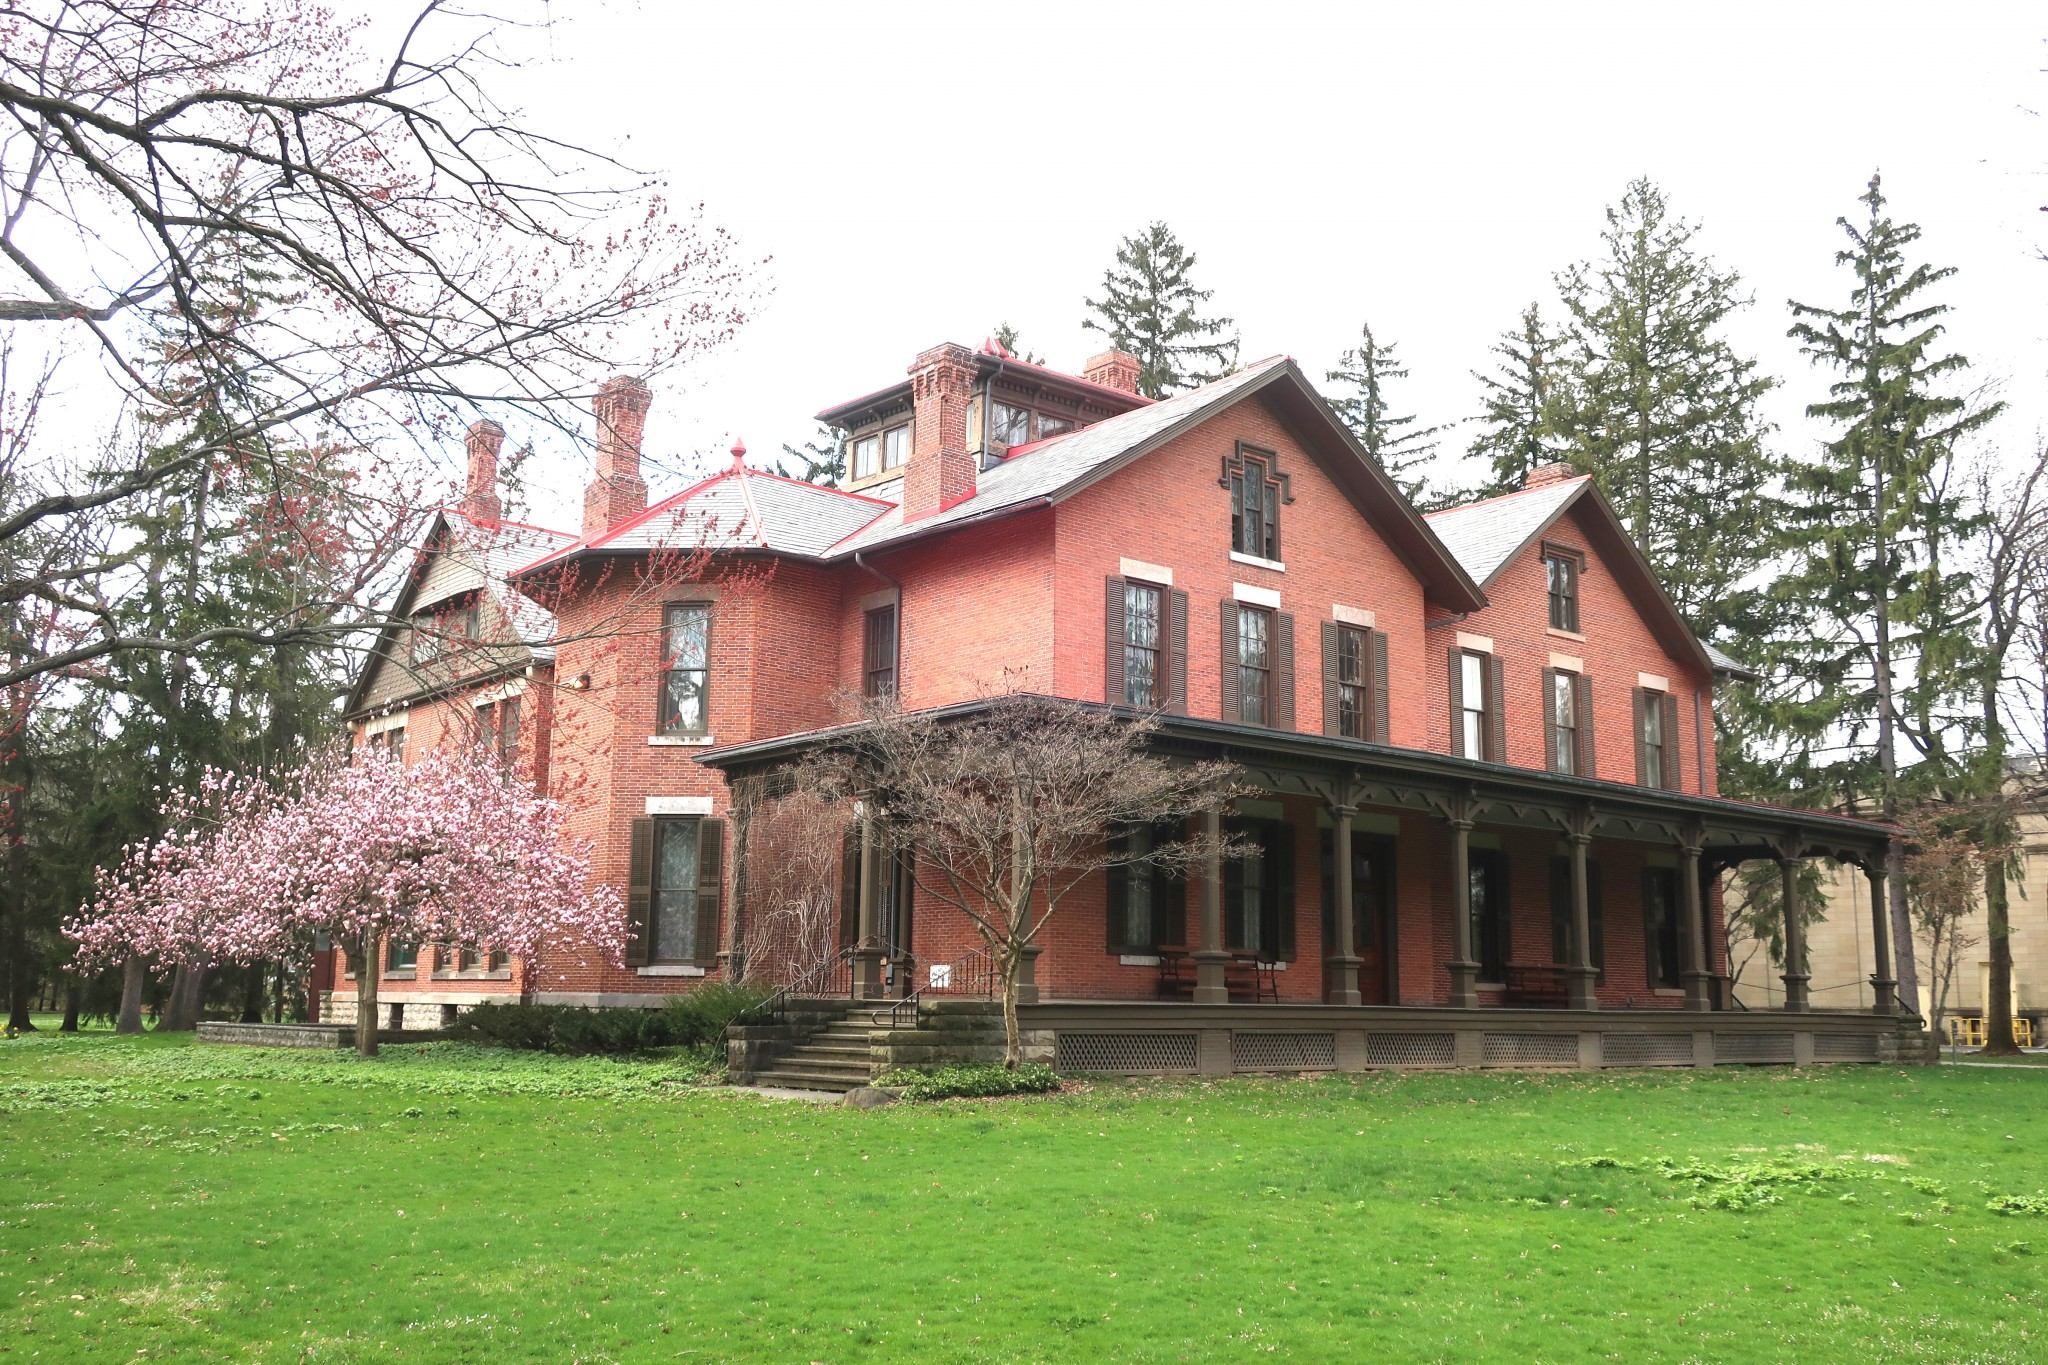 Spiegel Grove, the grounds of the Hayes Presidential Library & Museums, in Fremont, reopened to the public May 1. Hayes Presidential buildings remain closed due to the COVID-19 pandemic. (Submitted photo)